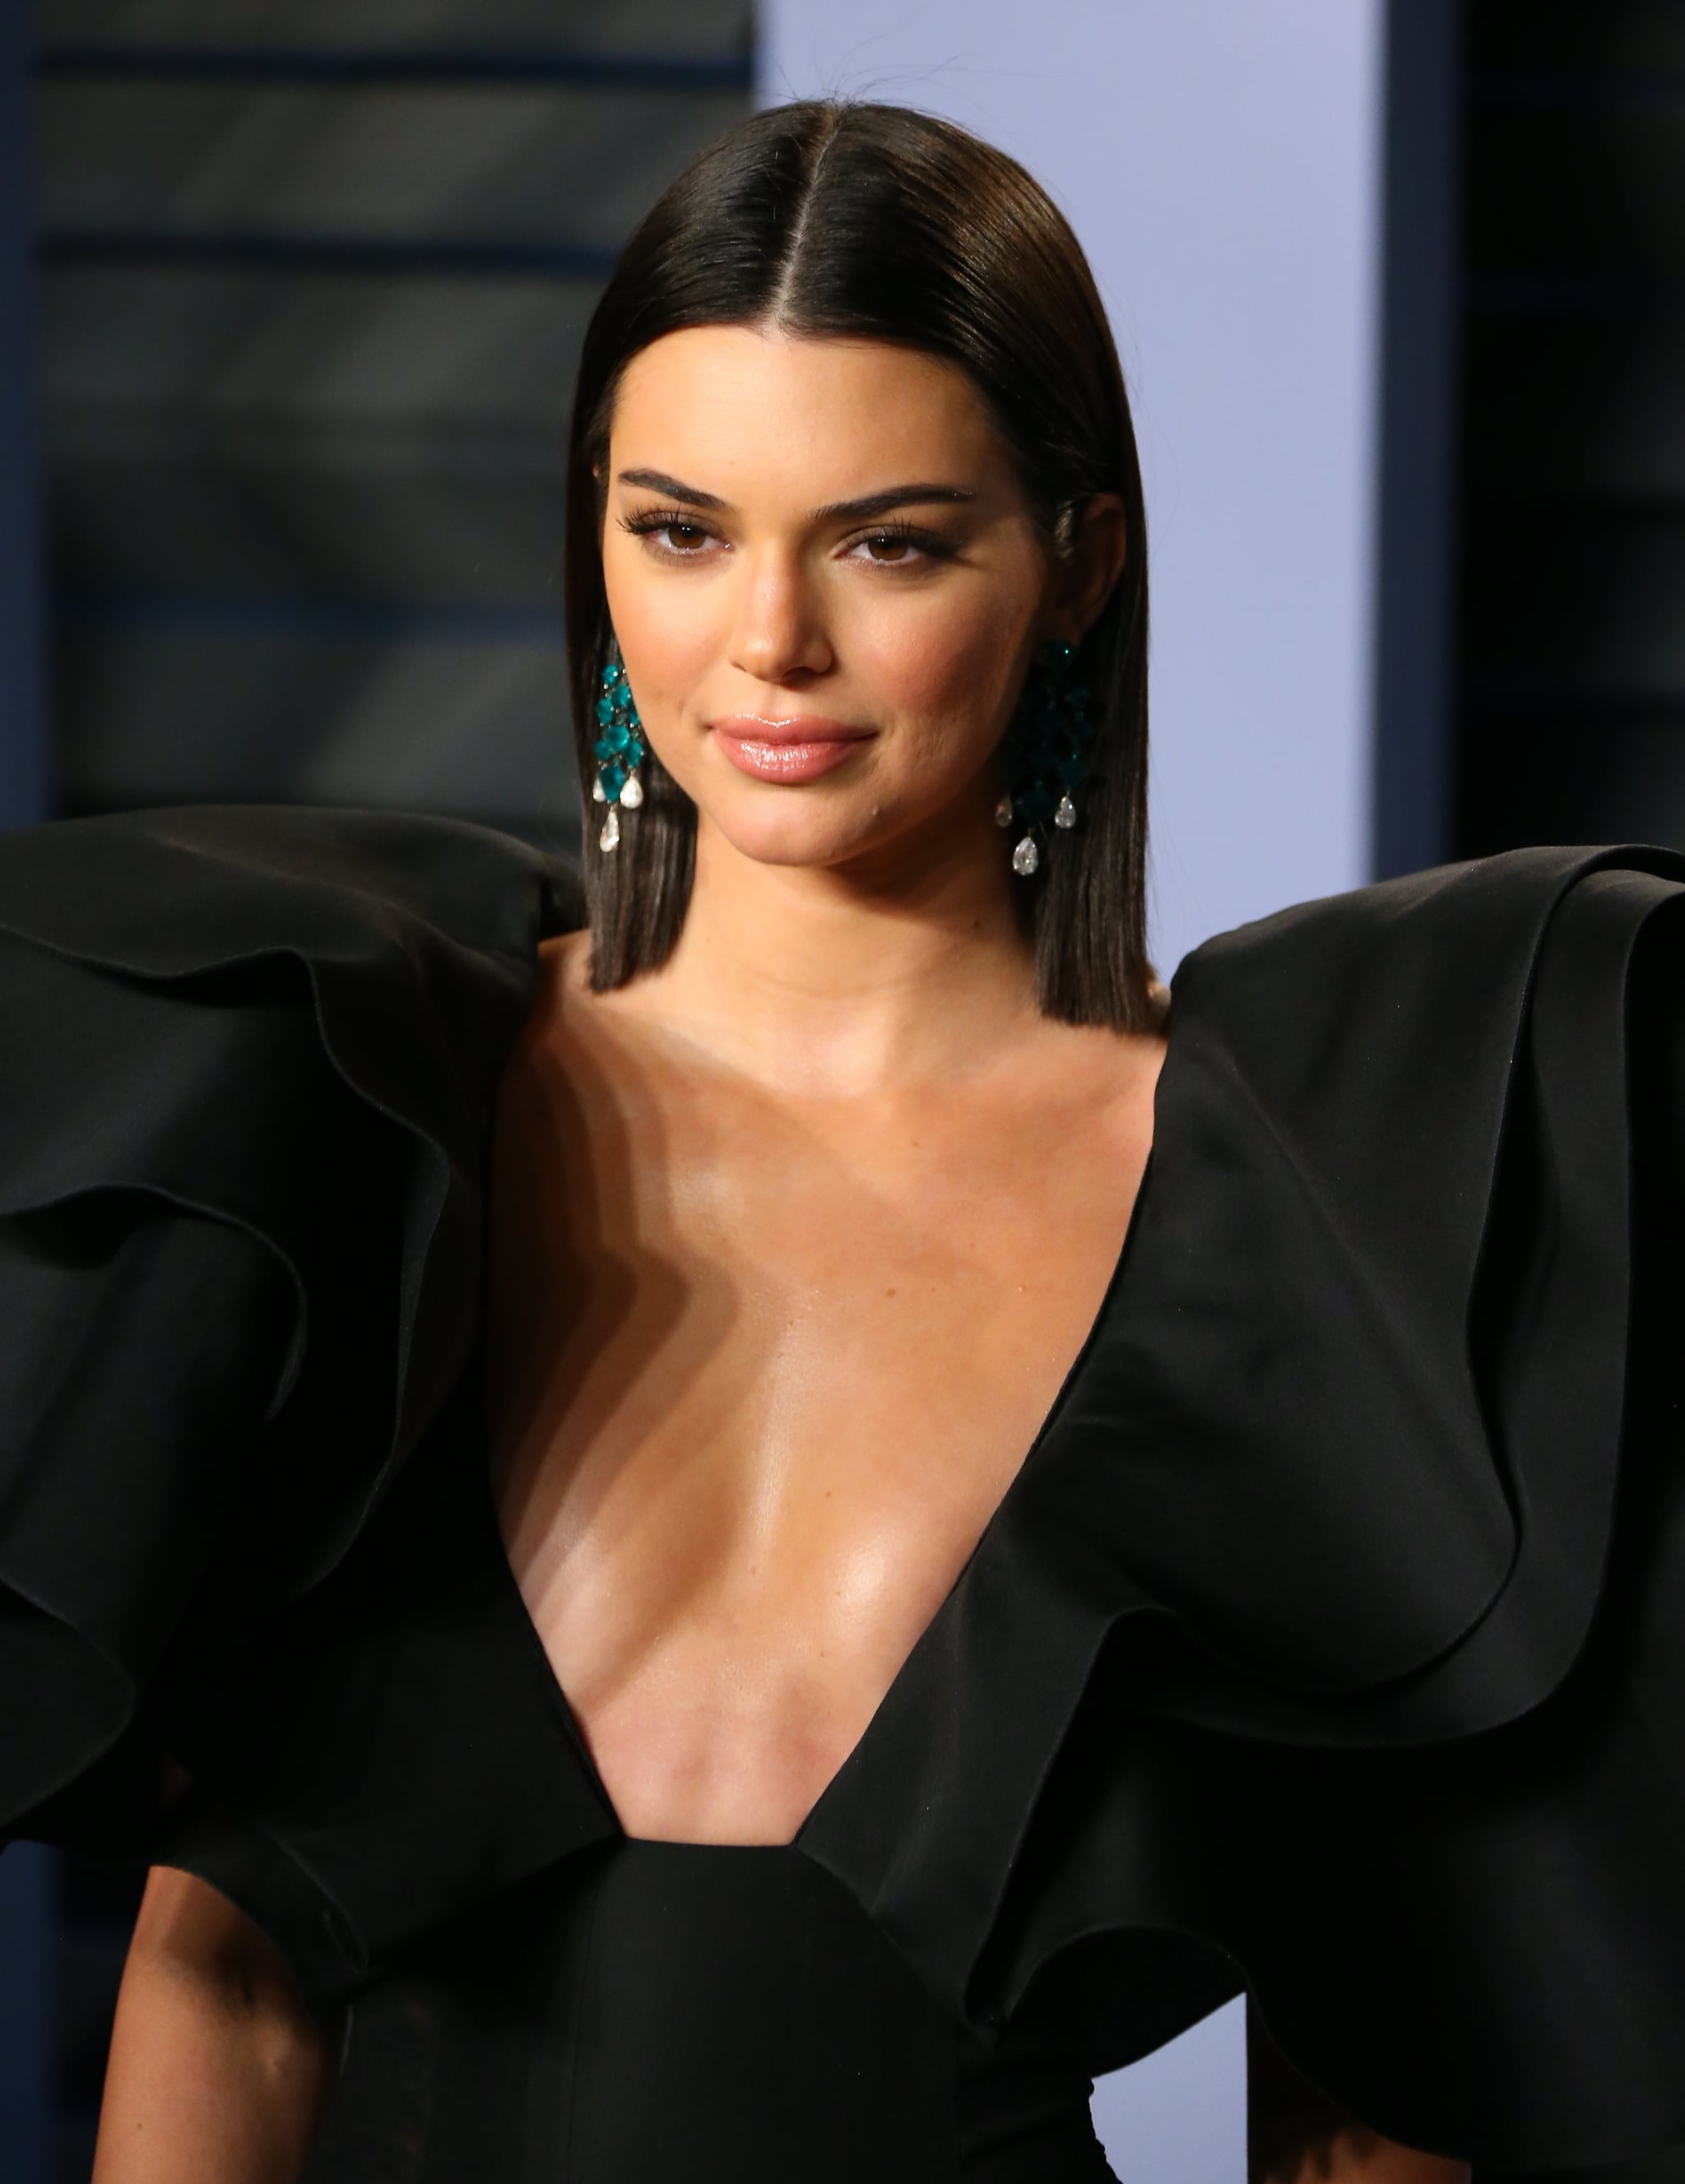 Kendall Jenner Cleavage photo 10